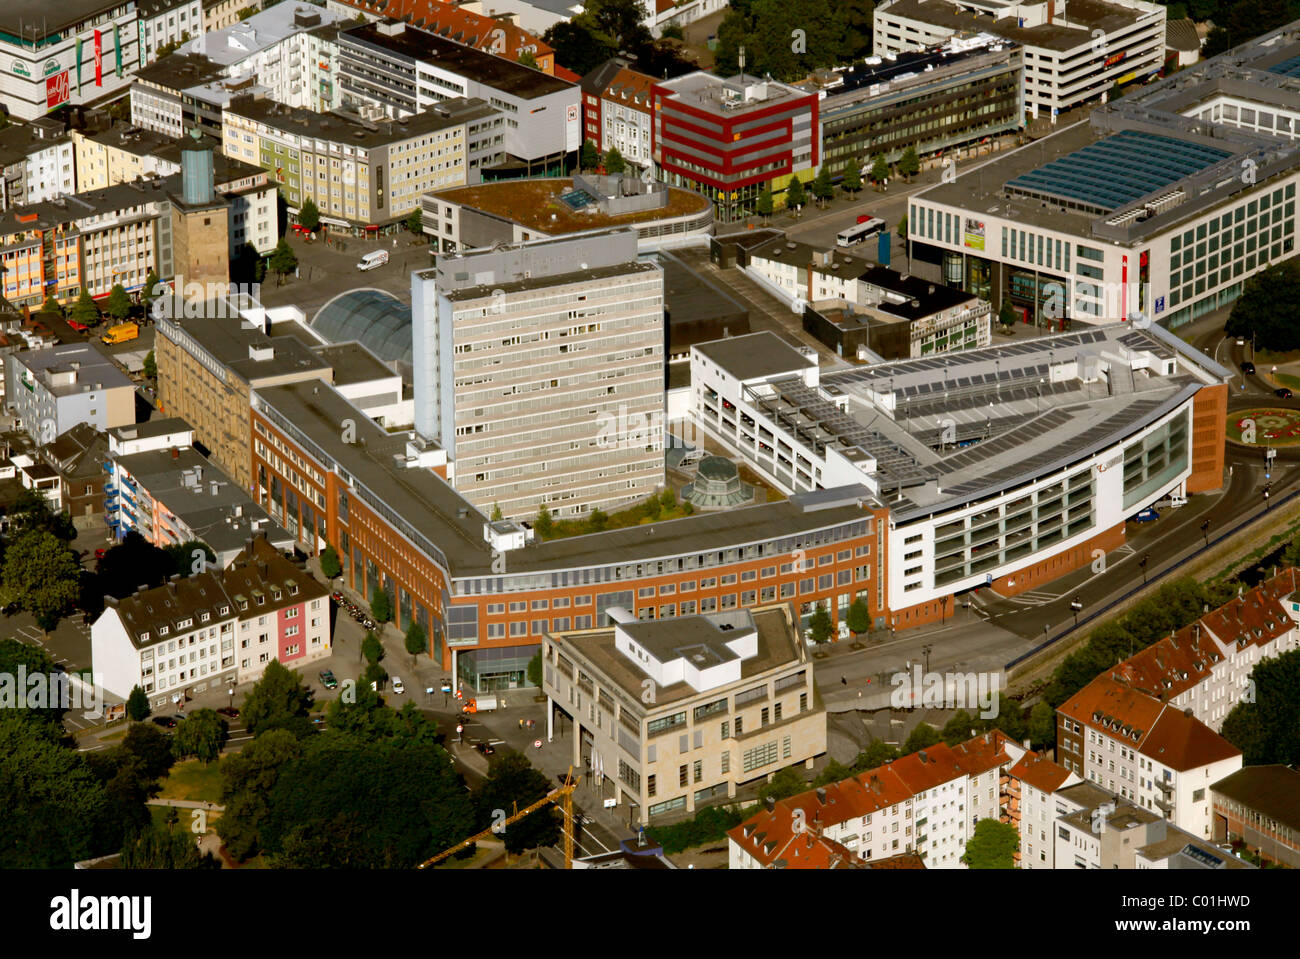 Aerial view, Citygalerie building, Mitte district, town centre, Hagen, Ruhrgebiet area, North Rhine-Westphalia, - Stock Image